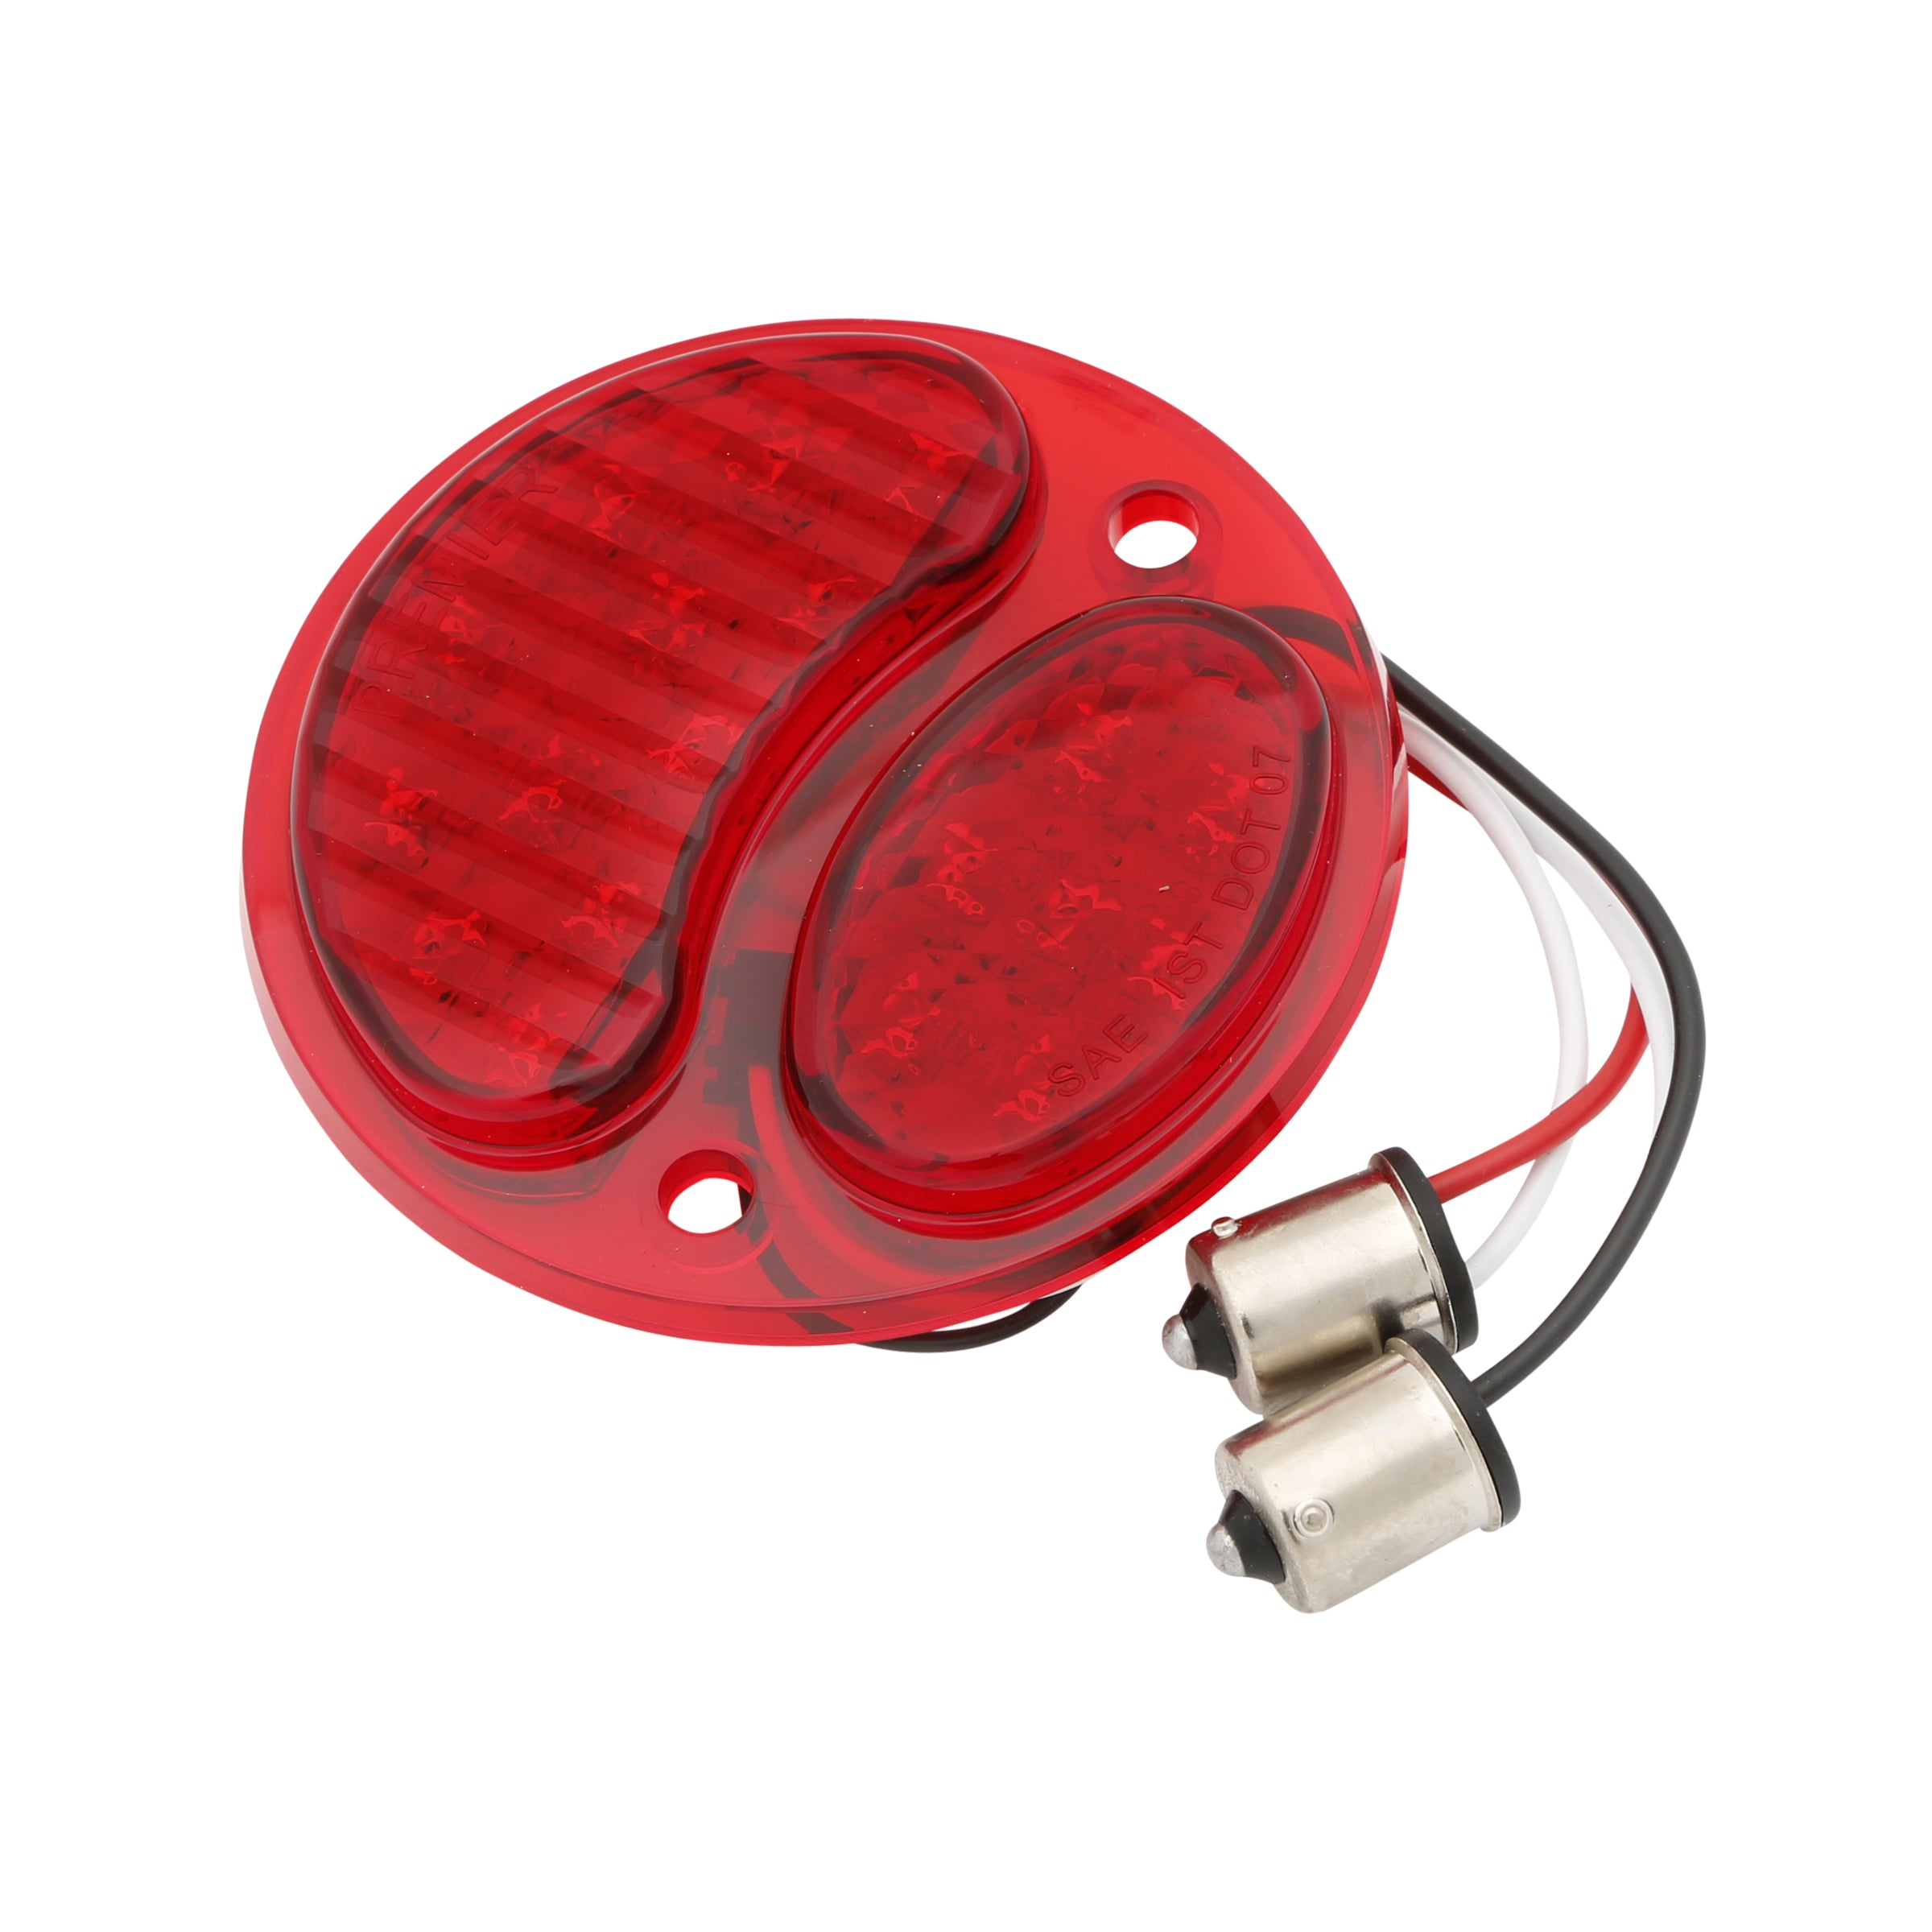 Taillight Lens Insert (LED 6 Volt All Red) • 1928-31 Model A Ford Right